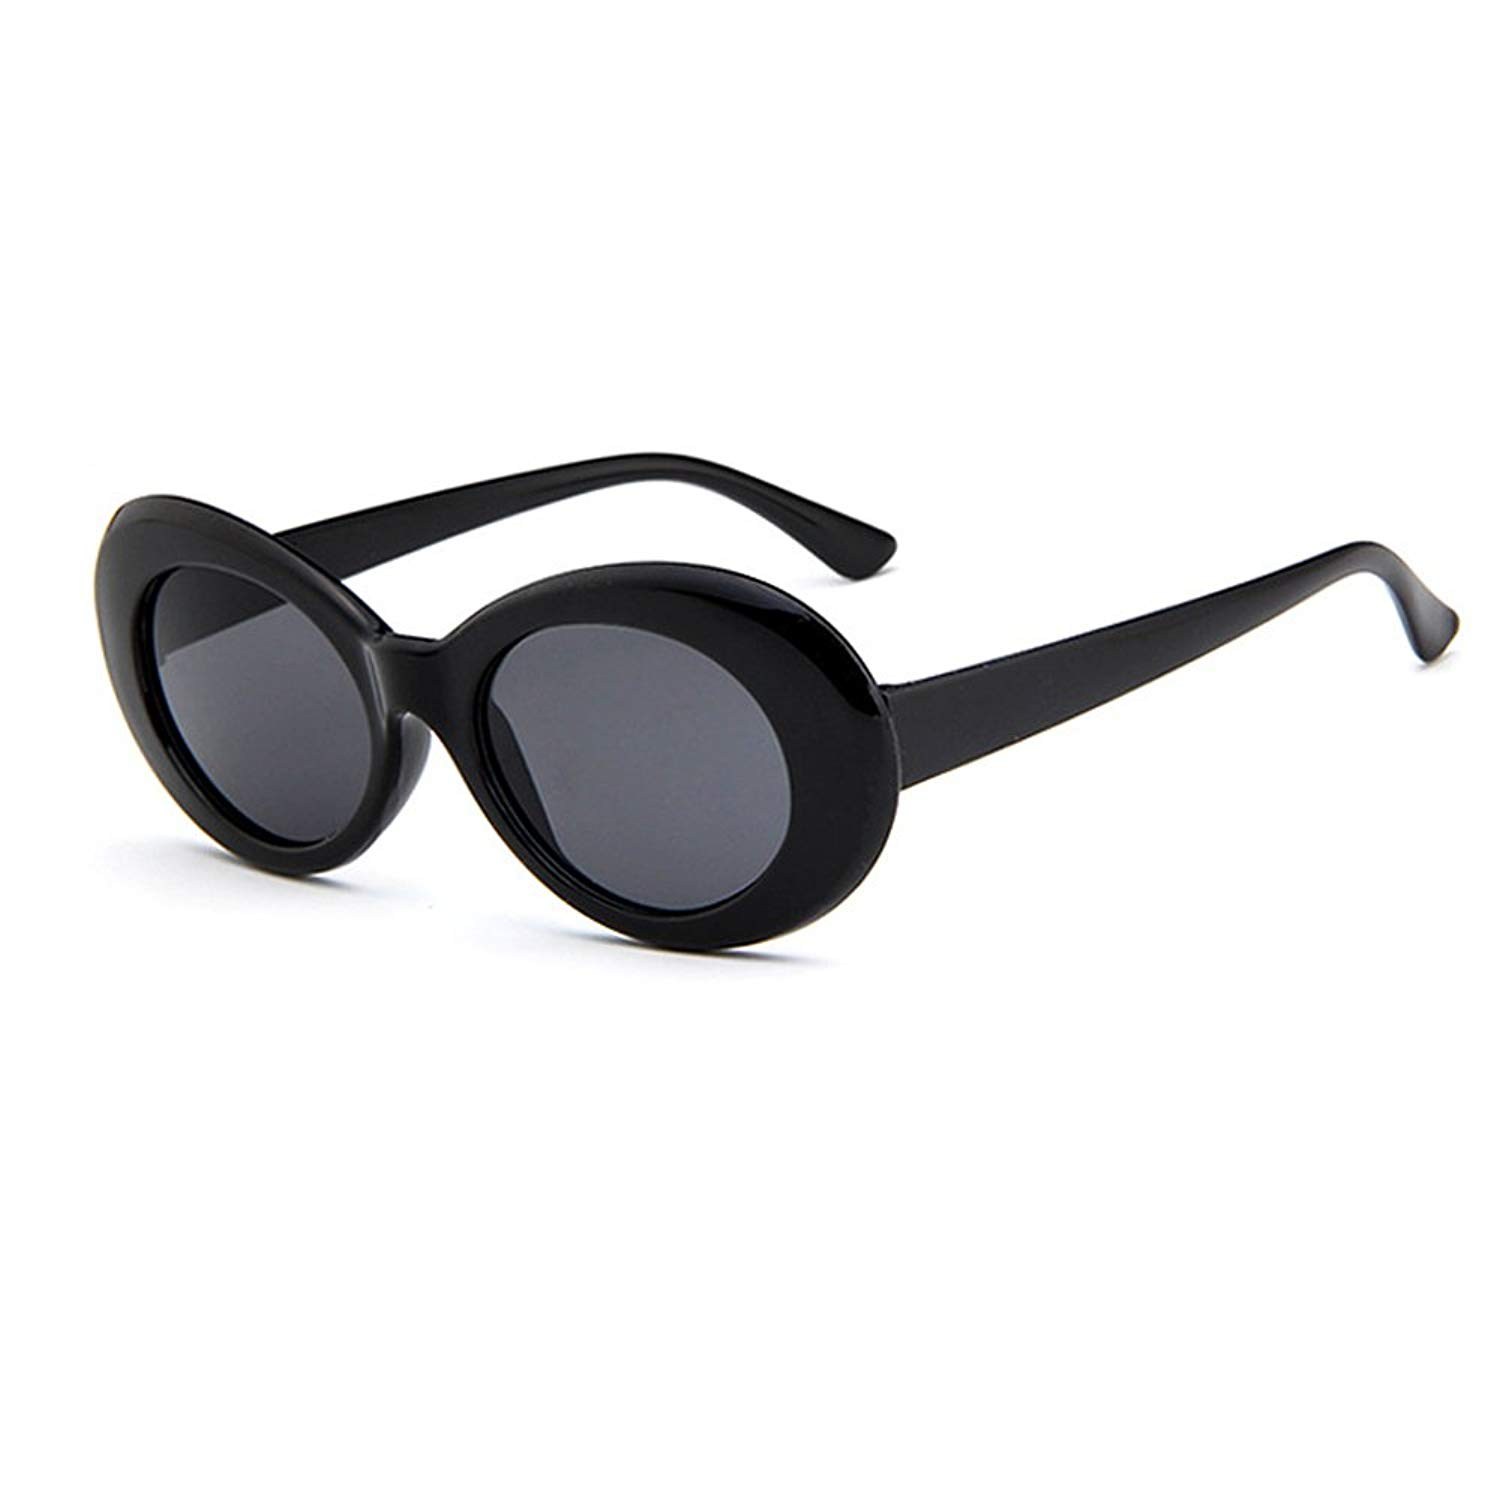 d1f805ccbe3 Get Quotations · HonkTai Oval Fashion Sunglasses Womens Sunglasses Beach Sunglasses  Surf Sunglasses Sport Sunglasses